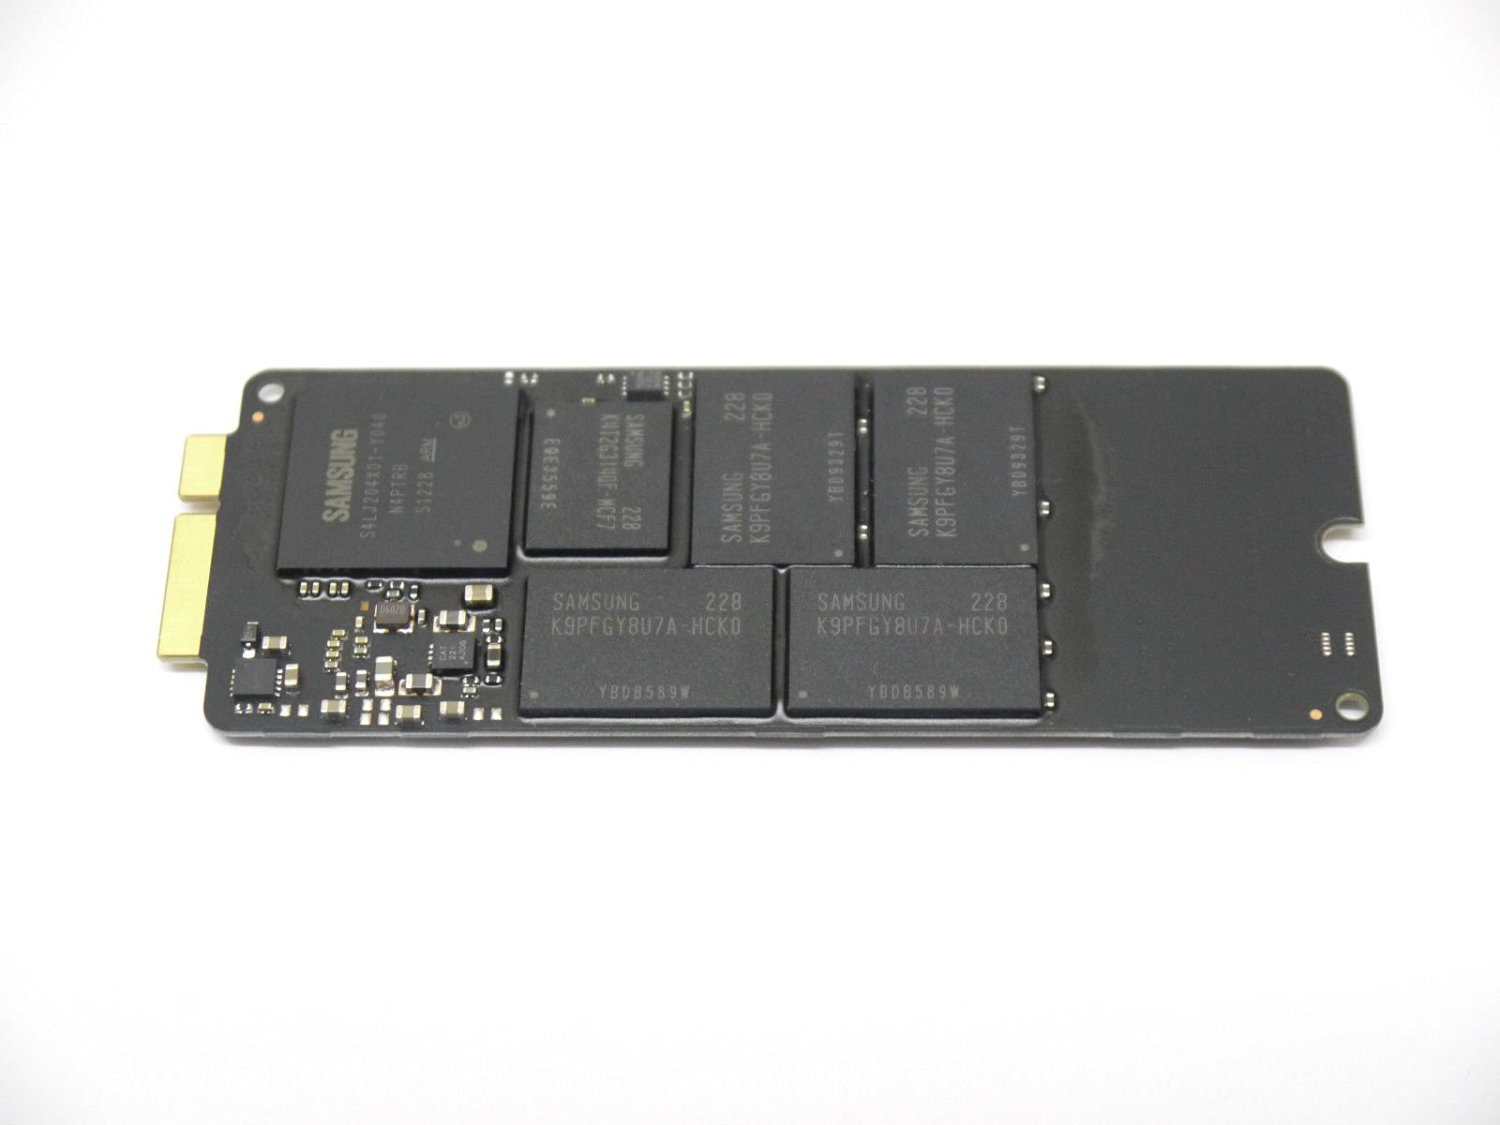 "Apple 512GB SSD Hard Drive SD5SL2-512G-1205E for MacBook Pro Retina 13"" 15"" A1398 A1425 HDD"